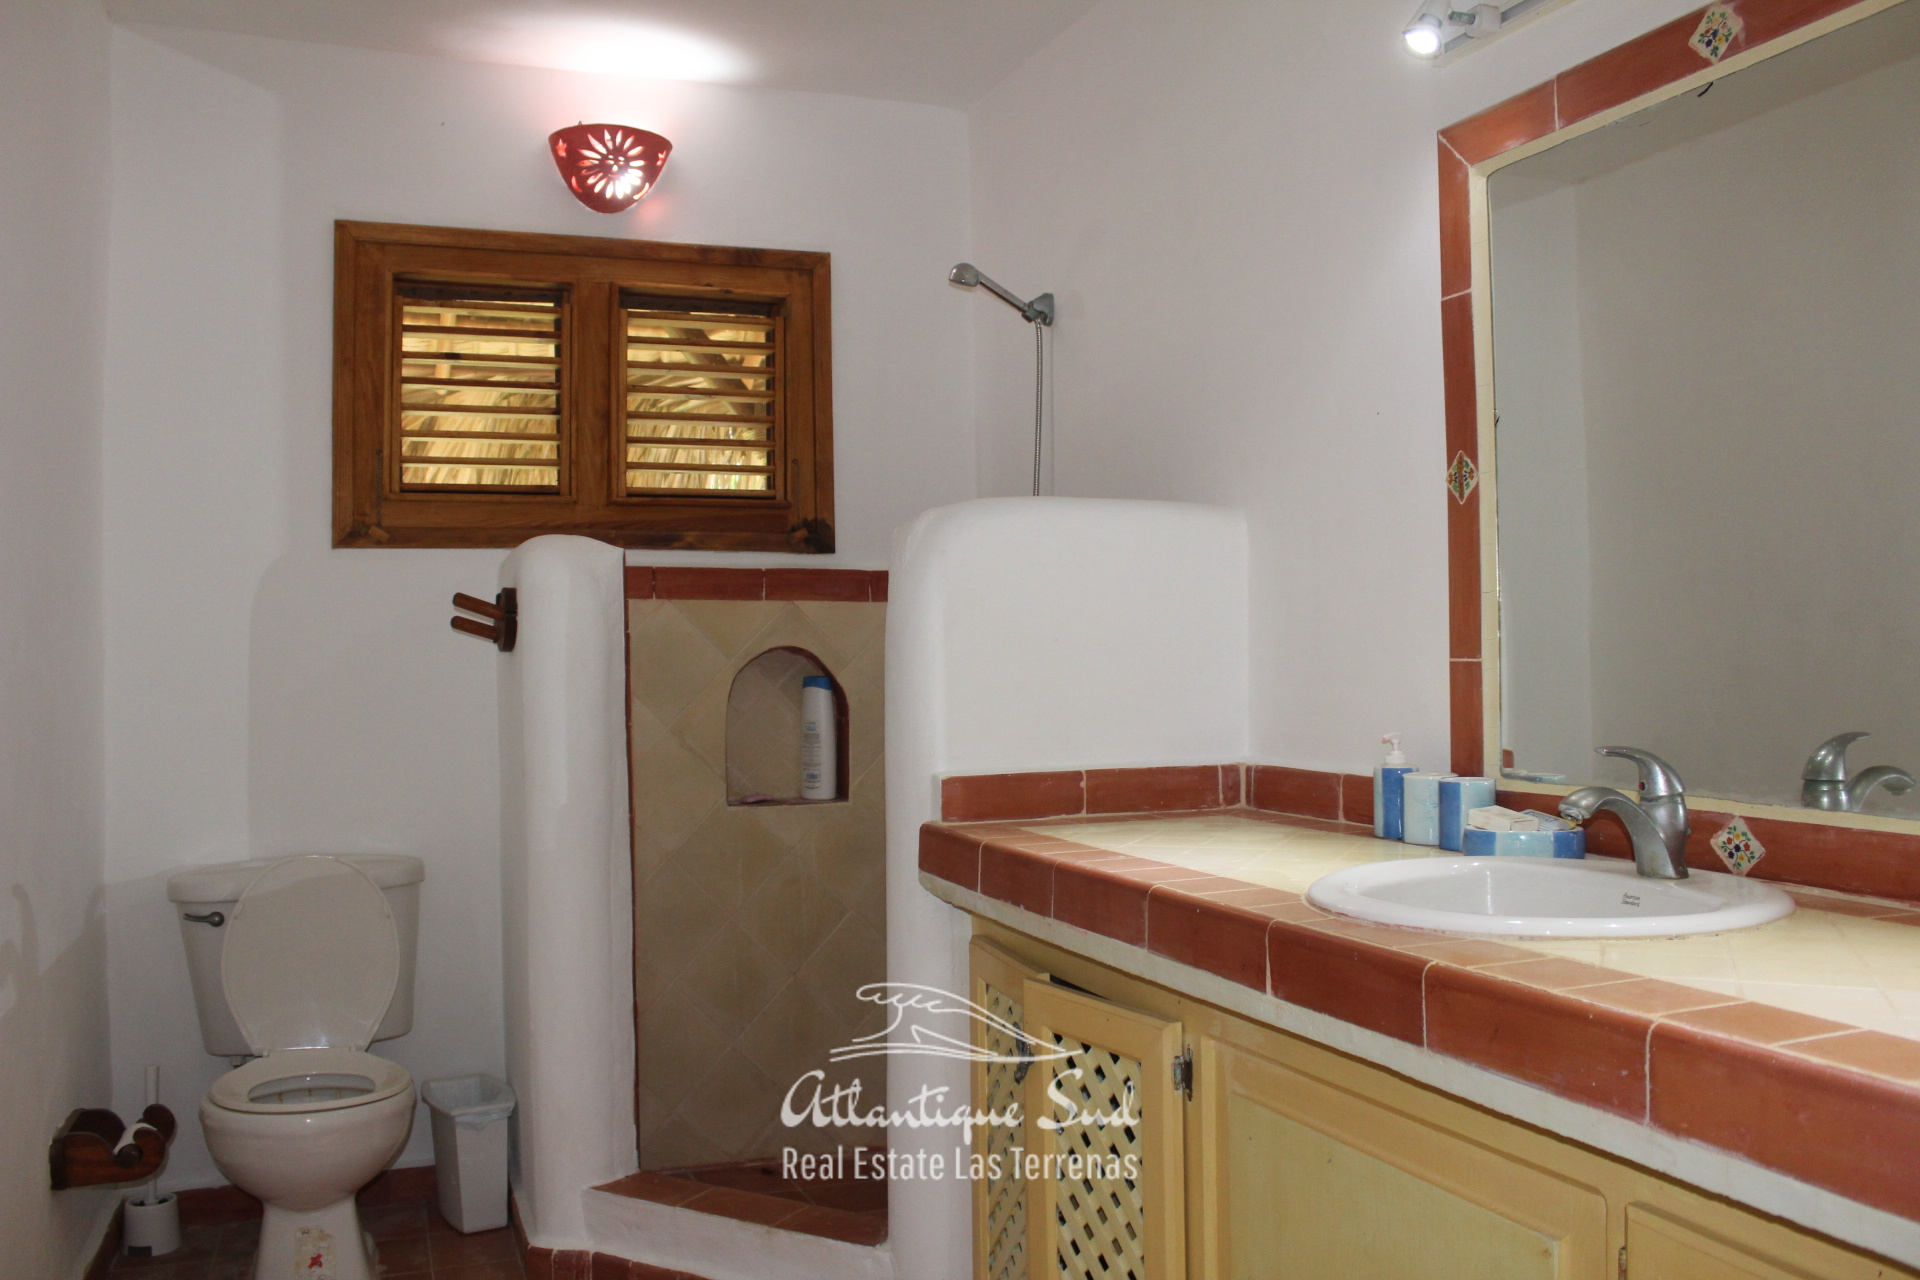 For-sale-Apartment-in-beachfront-community-with-mezzanine-Las-Terrenas_4802 (1).JPG